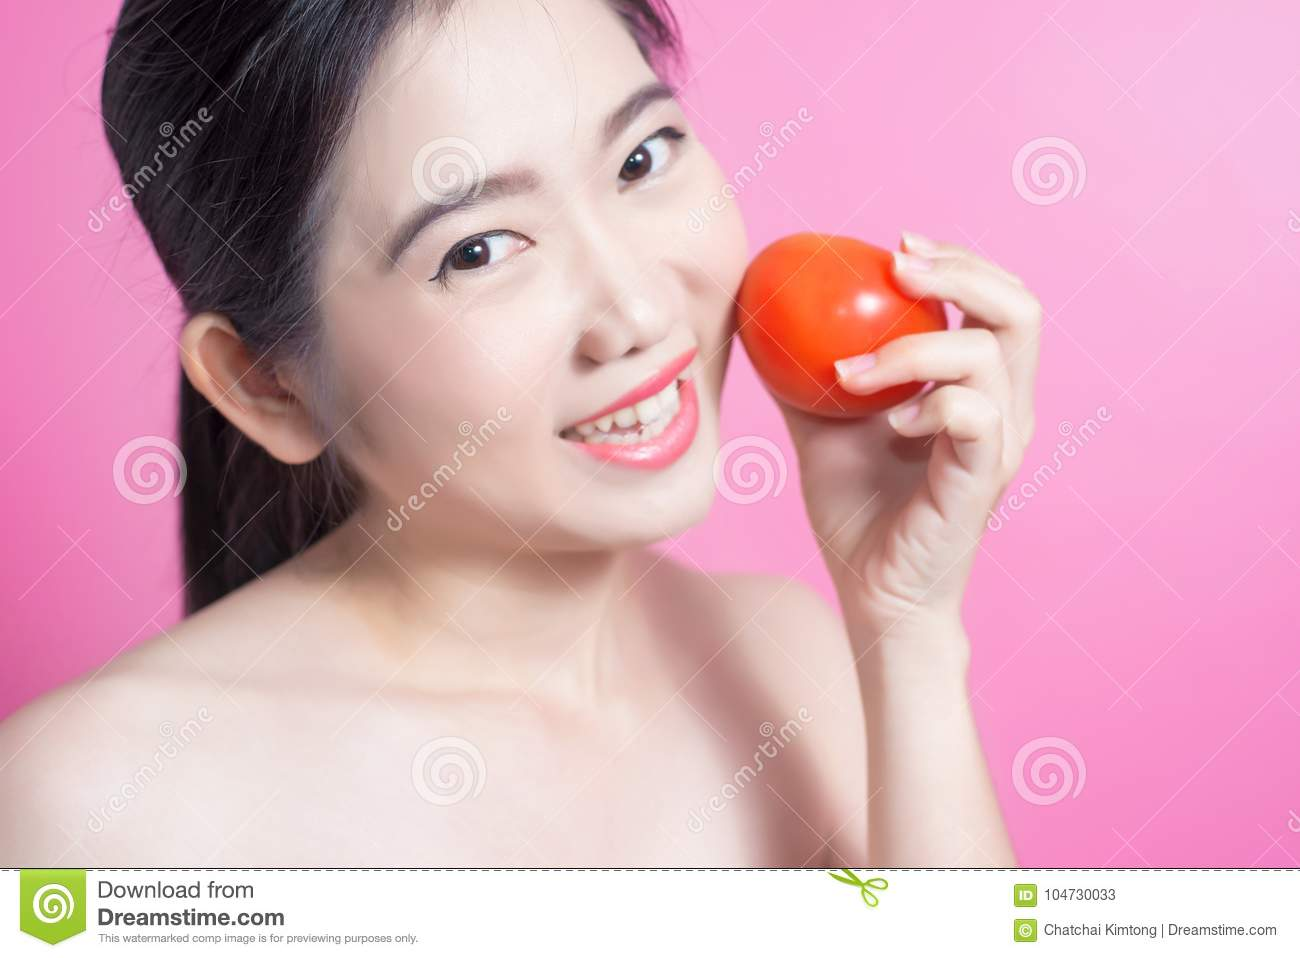 Asian woman with tomato concept. She smiling and holding tomato. Beauty face and natural makeup. Isolated over pink background.